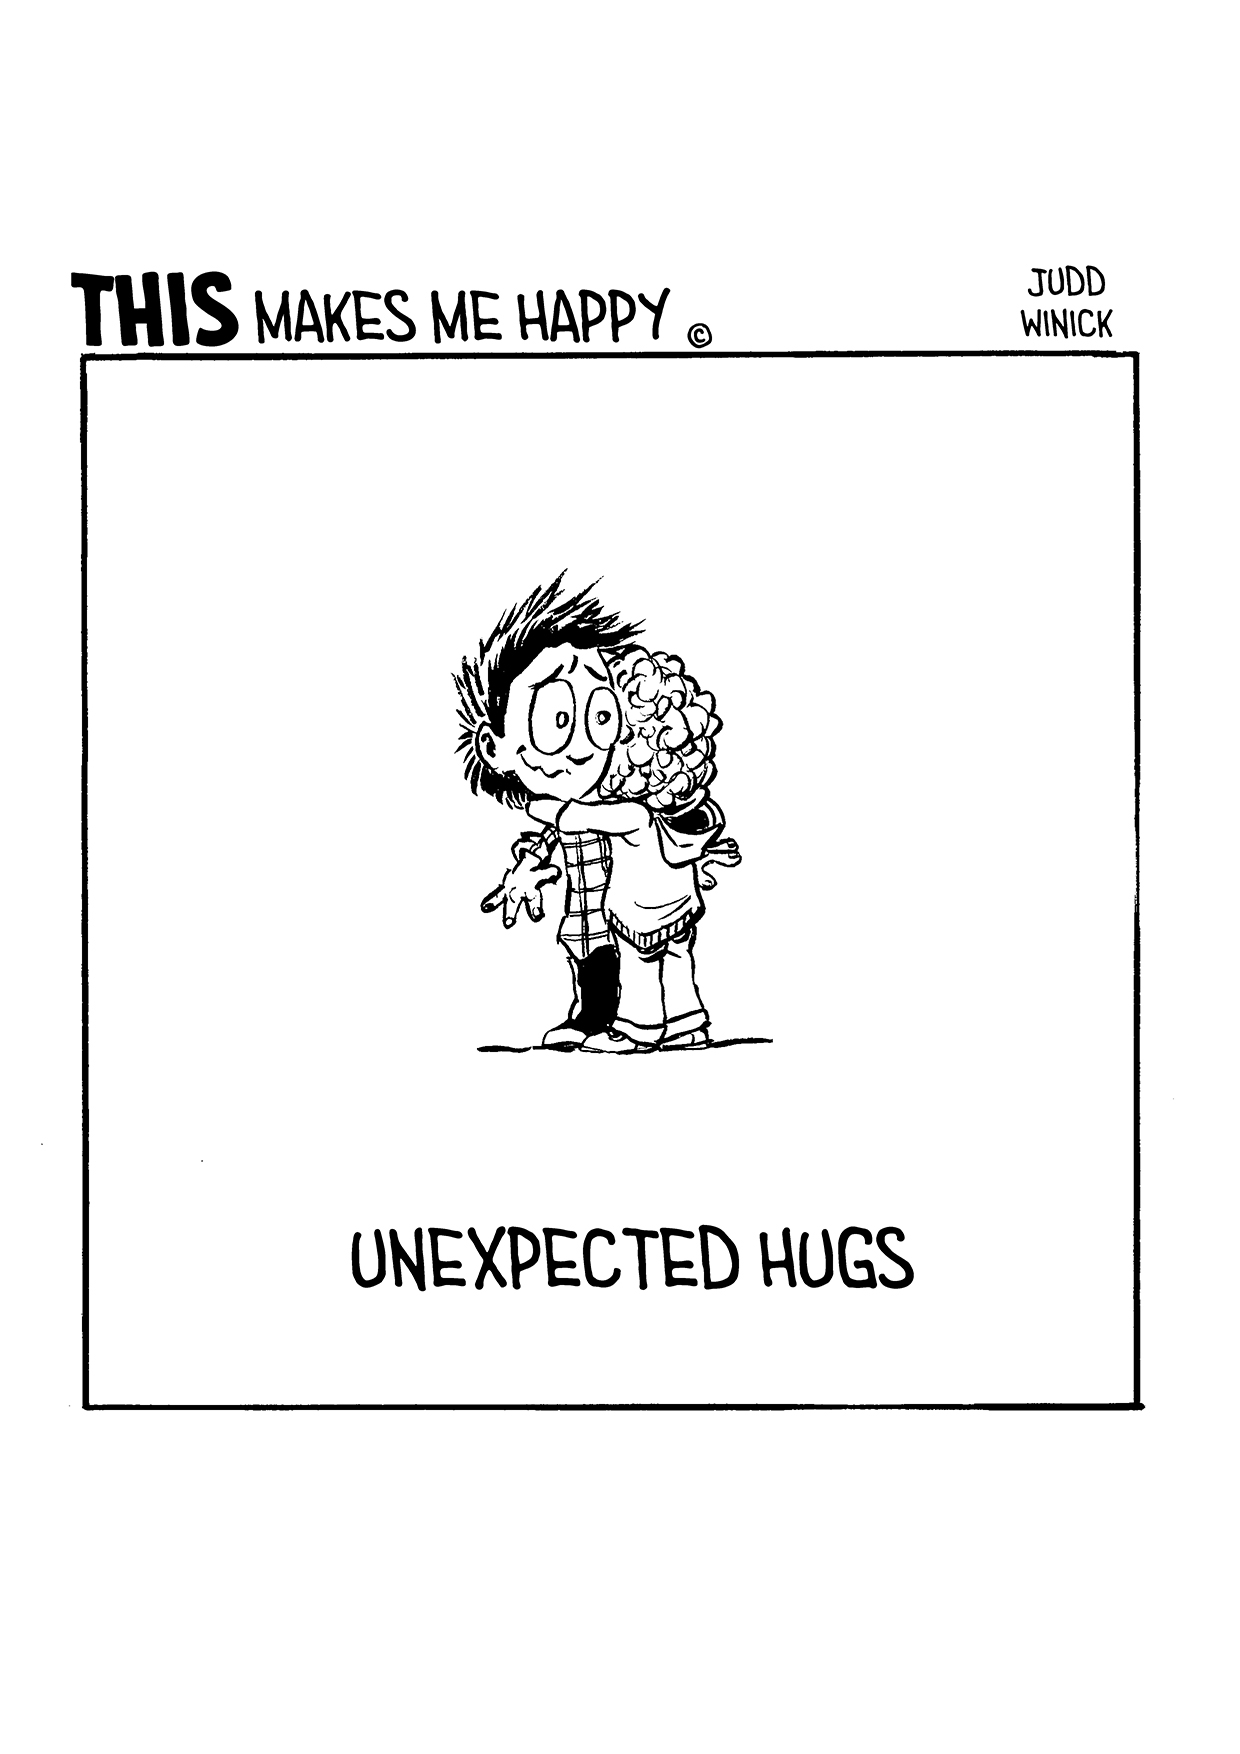 TMMH 58 unexpected hugs